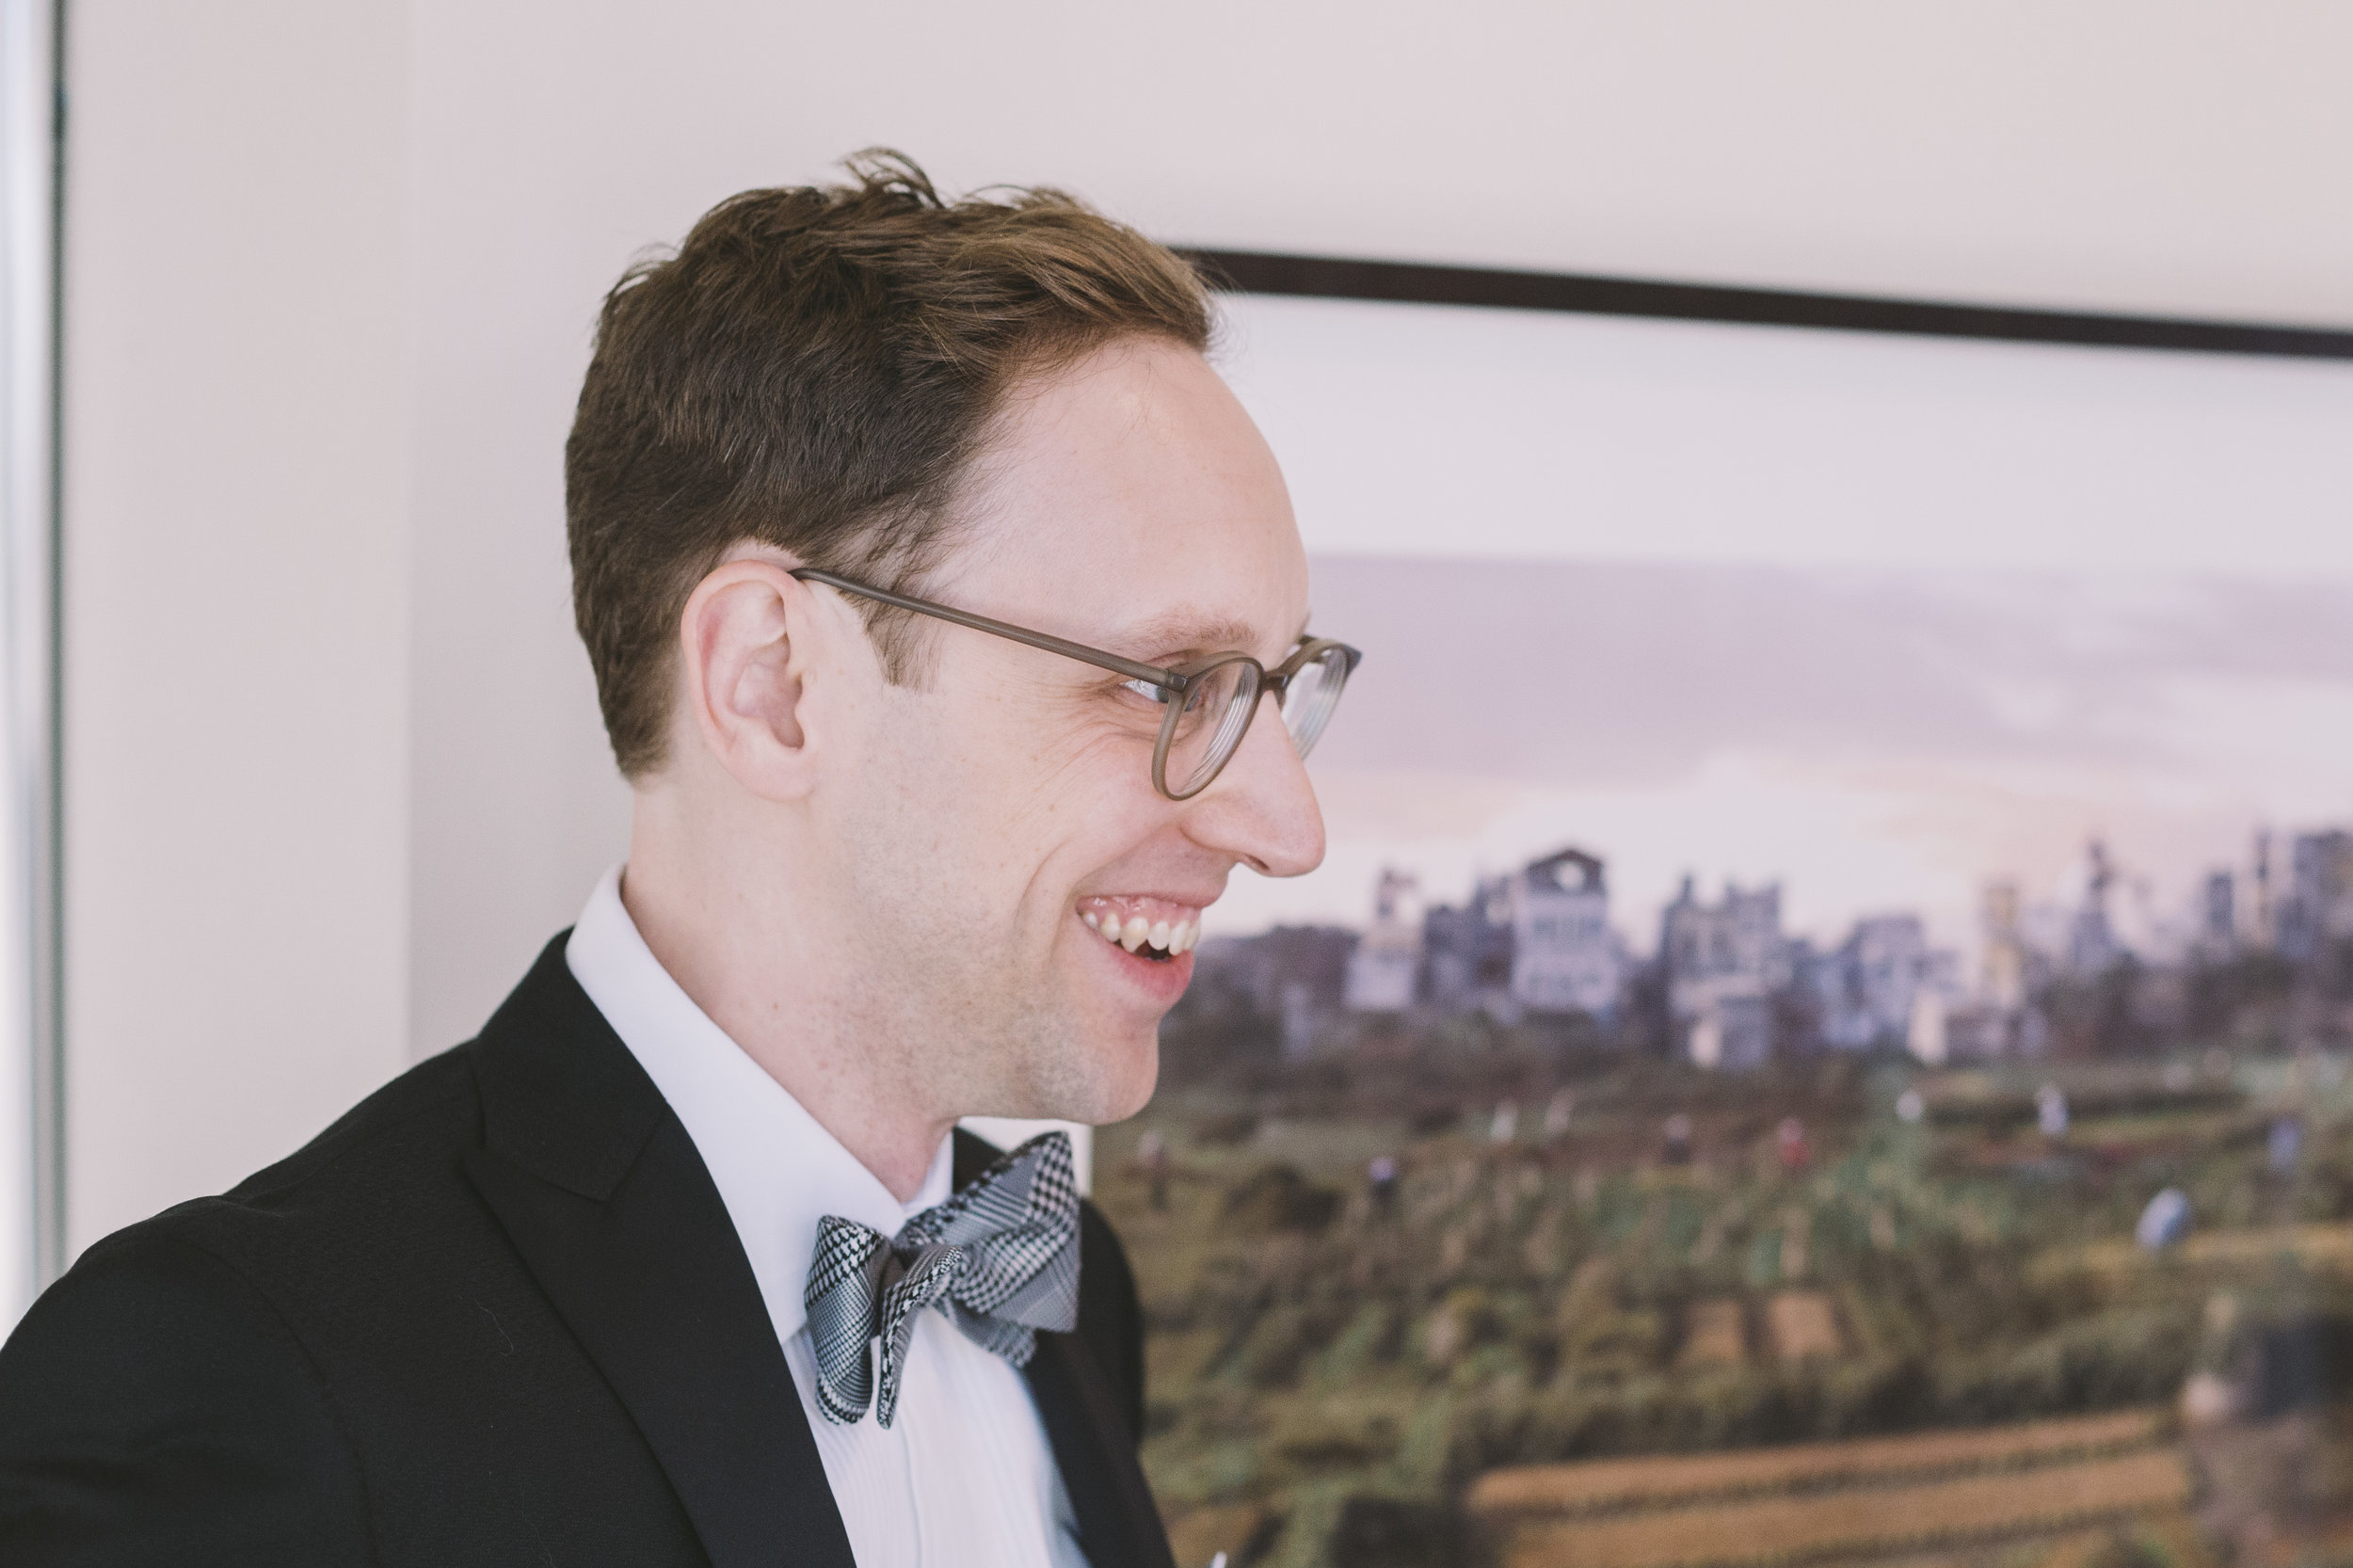 Groom's First Look Photo